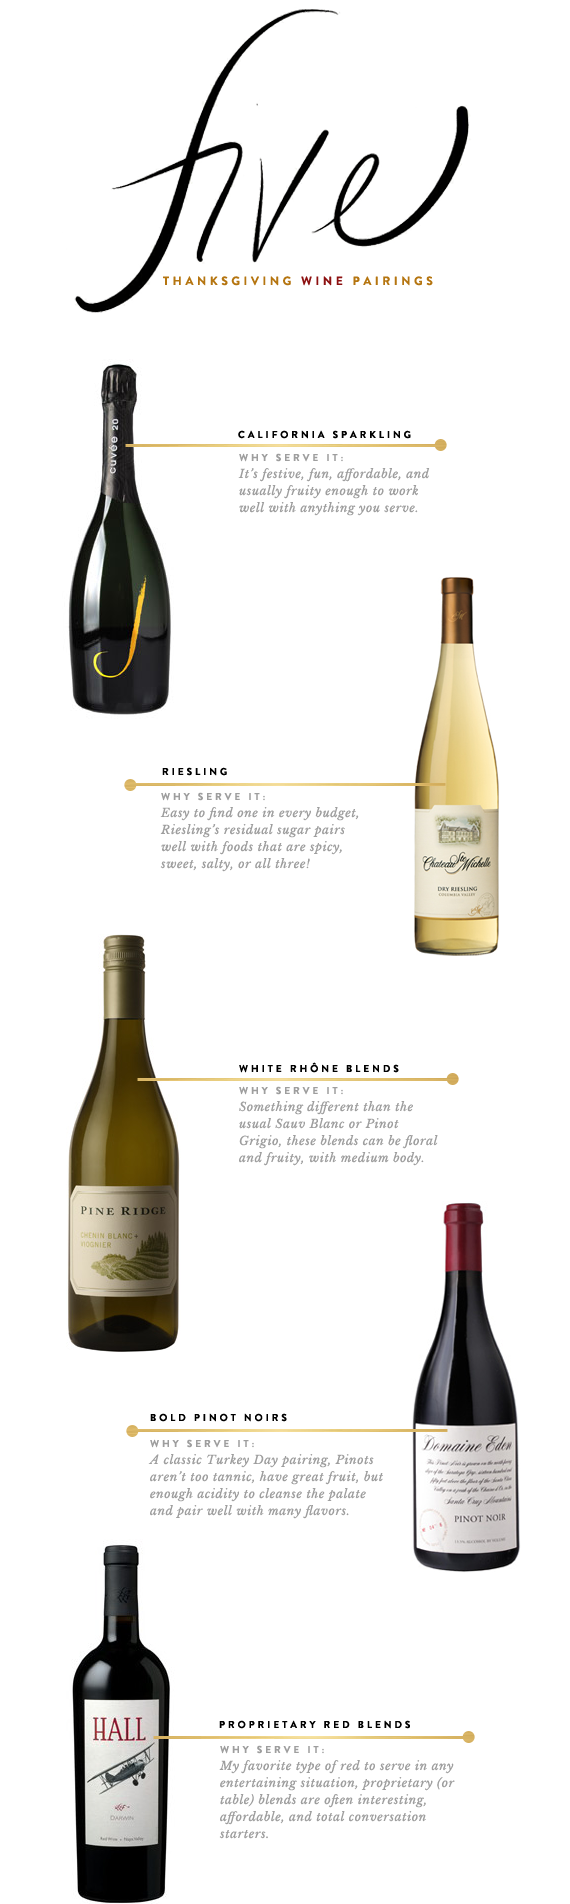 wine pairing ideas for Thanksgiving dinner